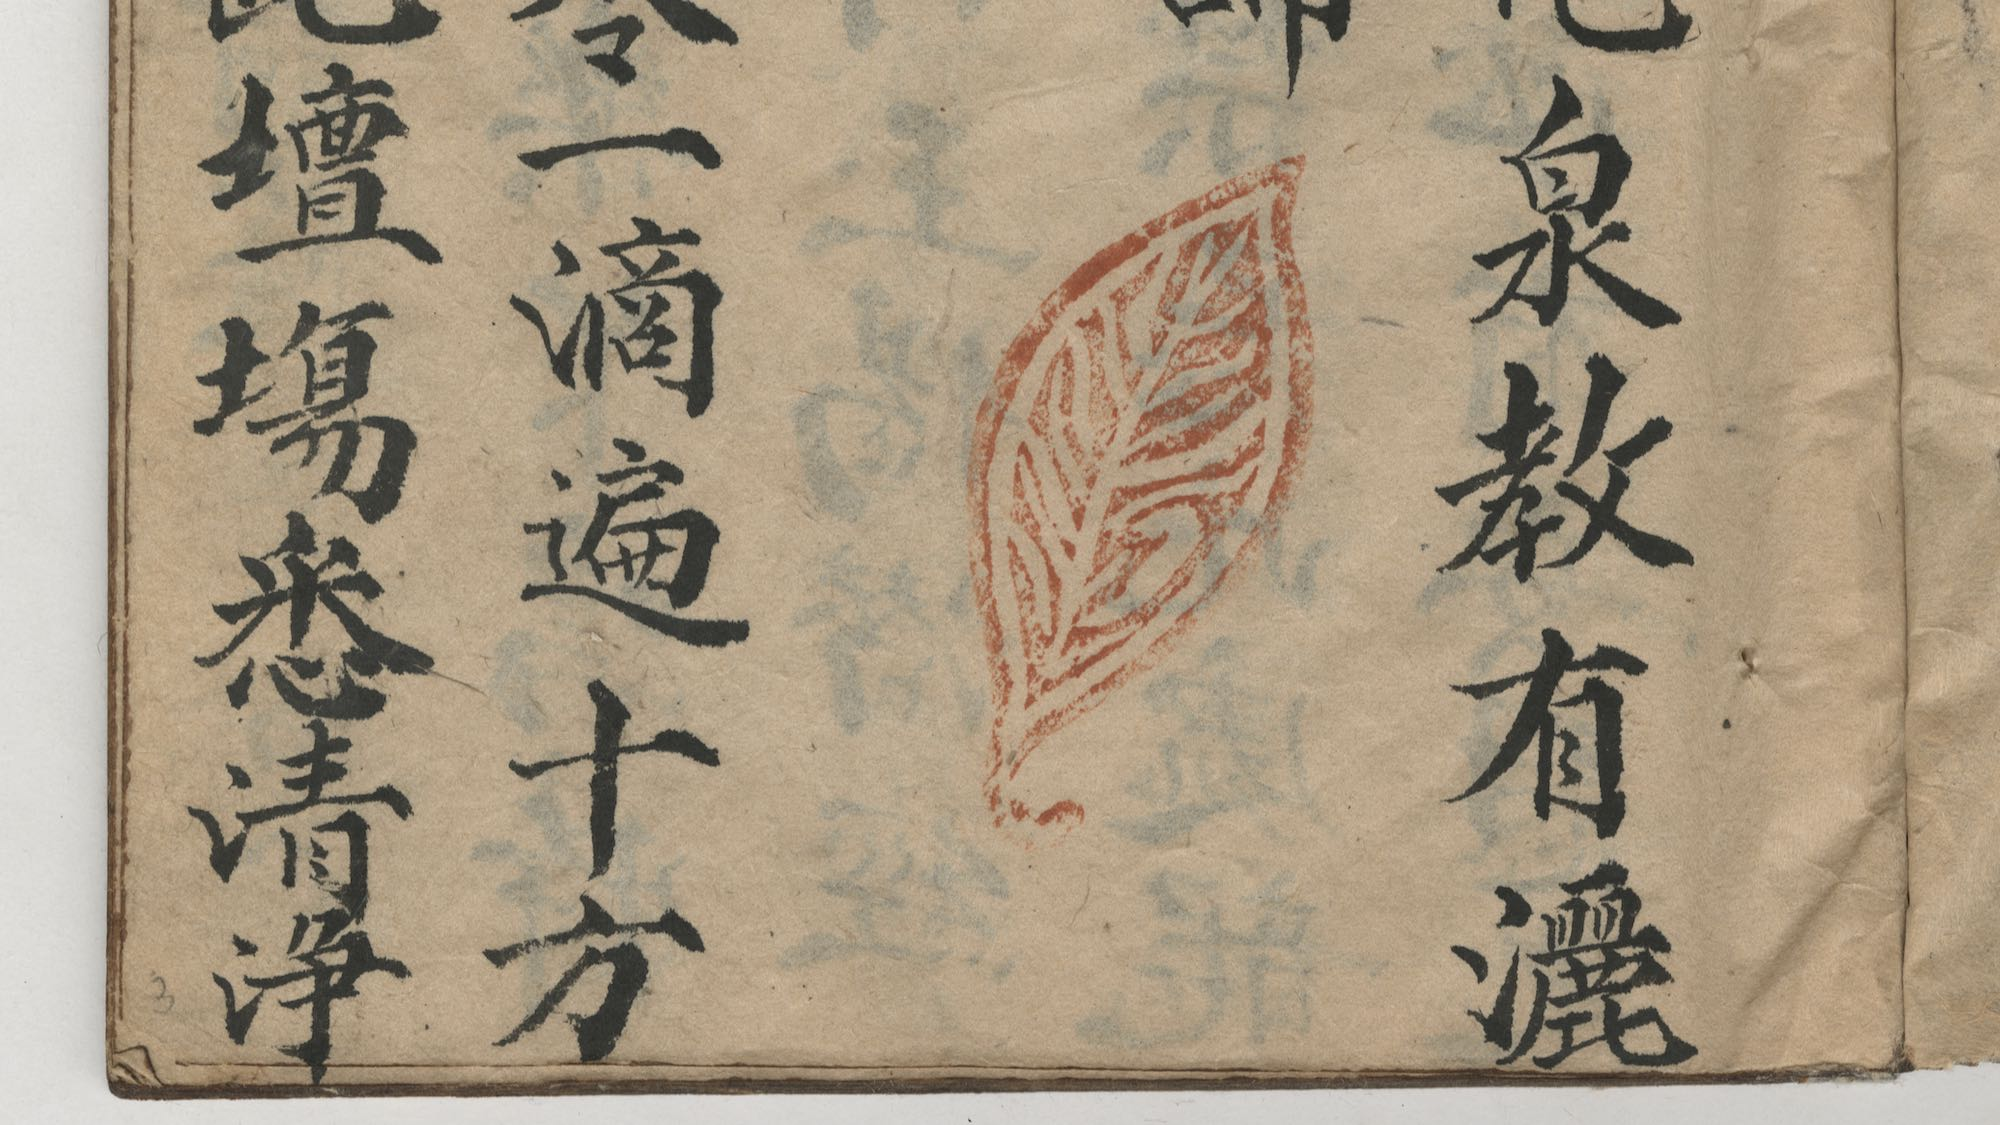 image from a manuscript collection of Sino-Viet Ritual Texts